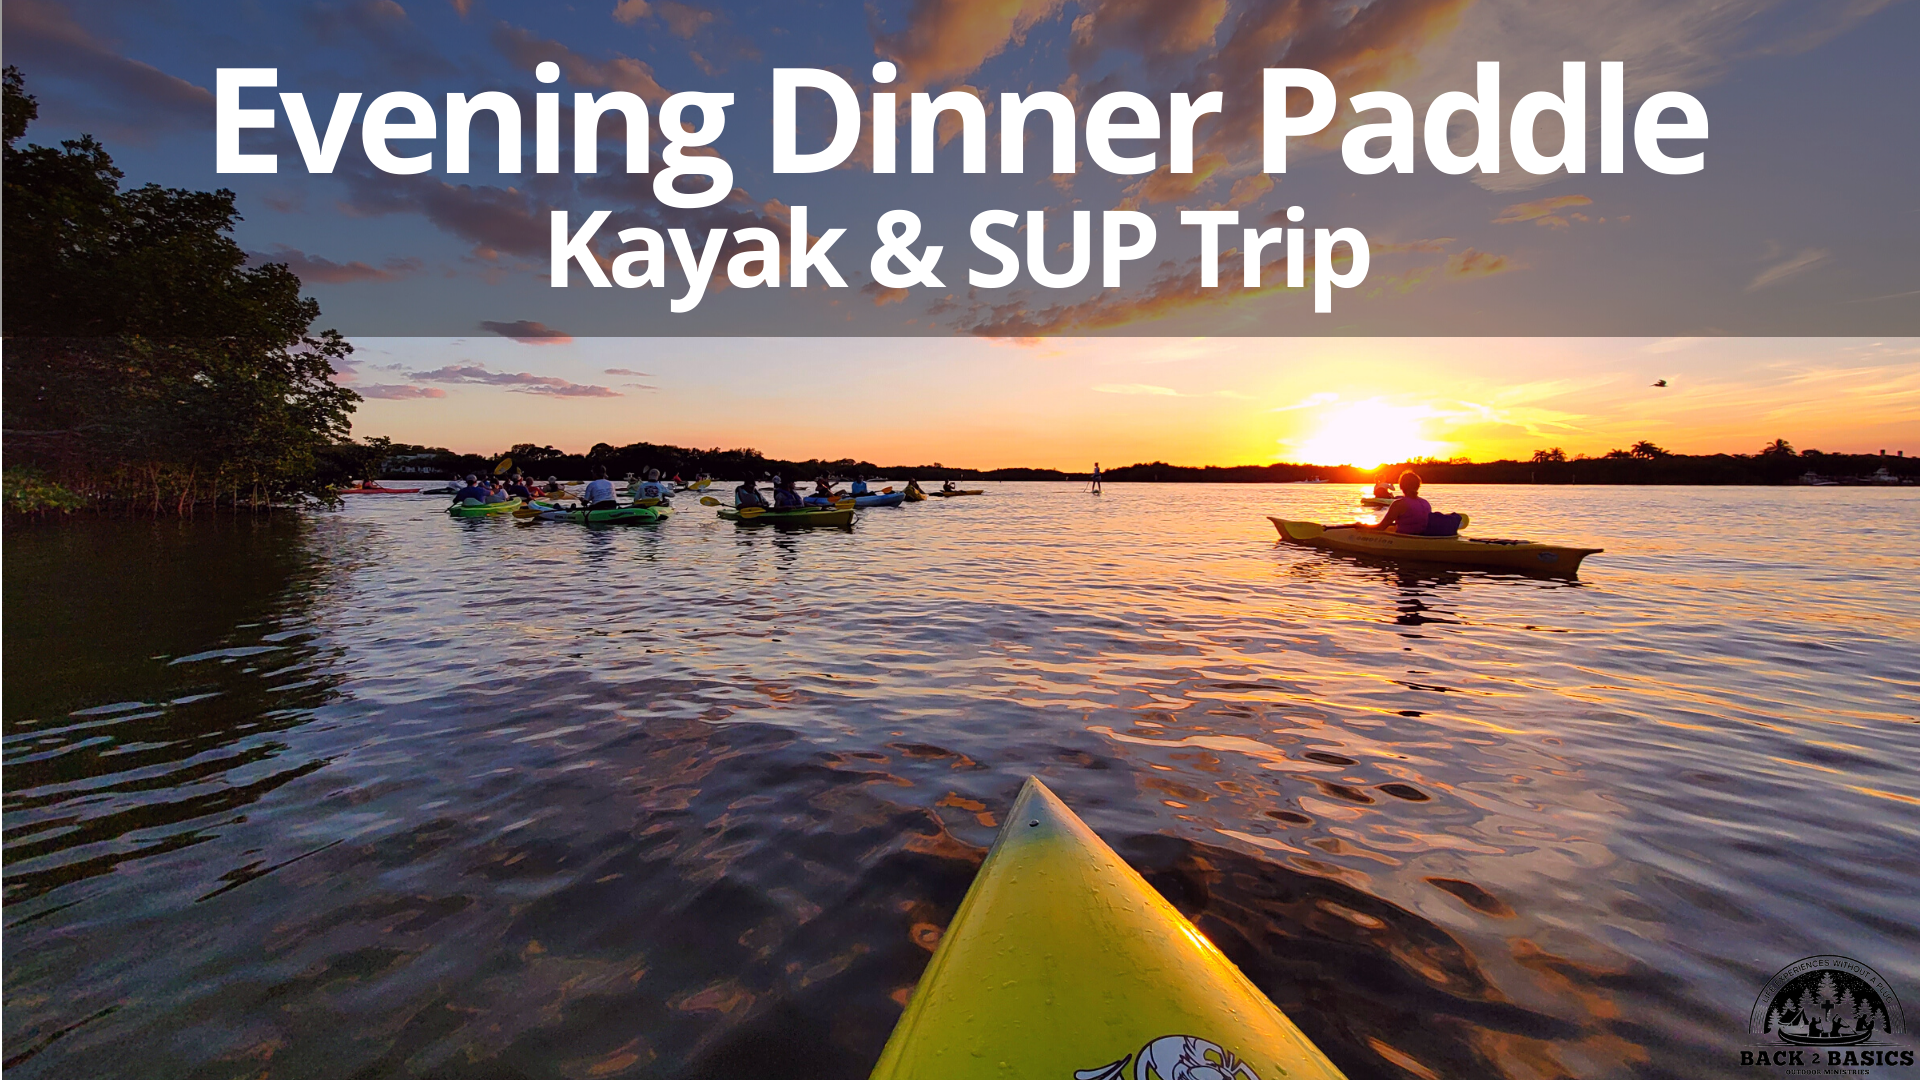 evening dinner paddle, back2basics outdoor ministries